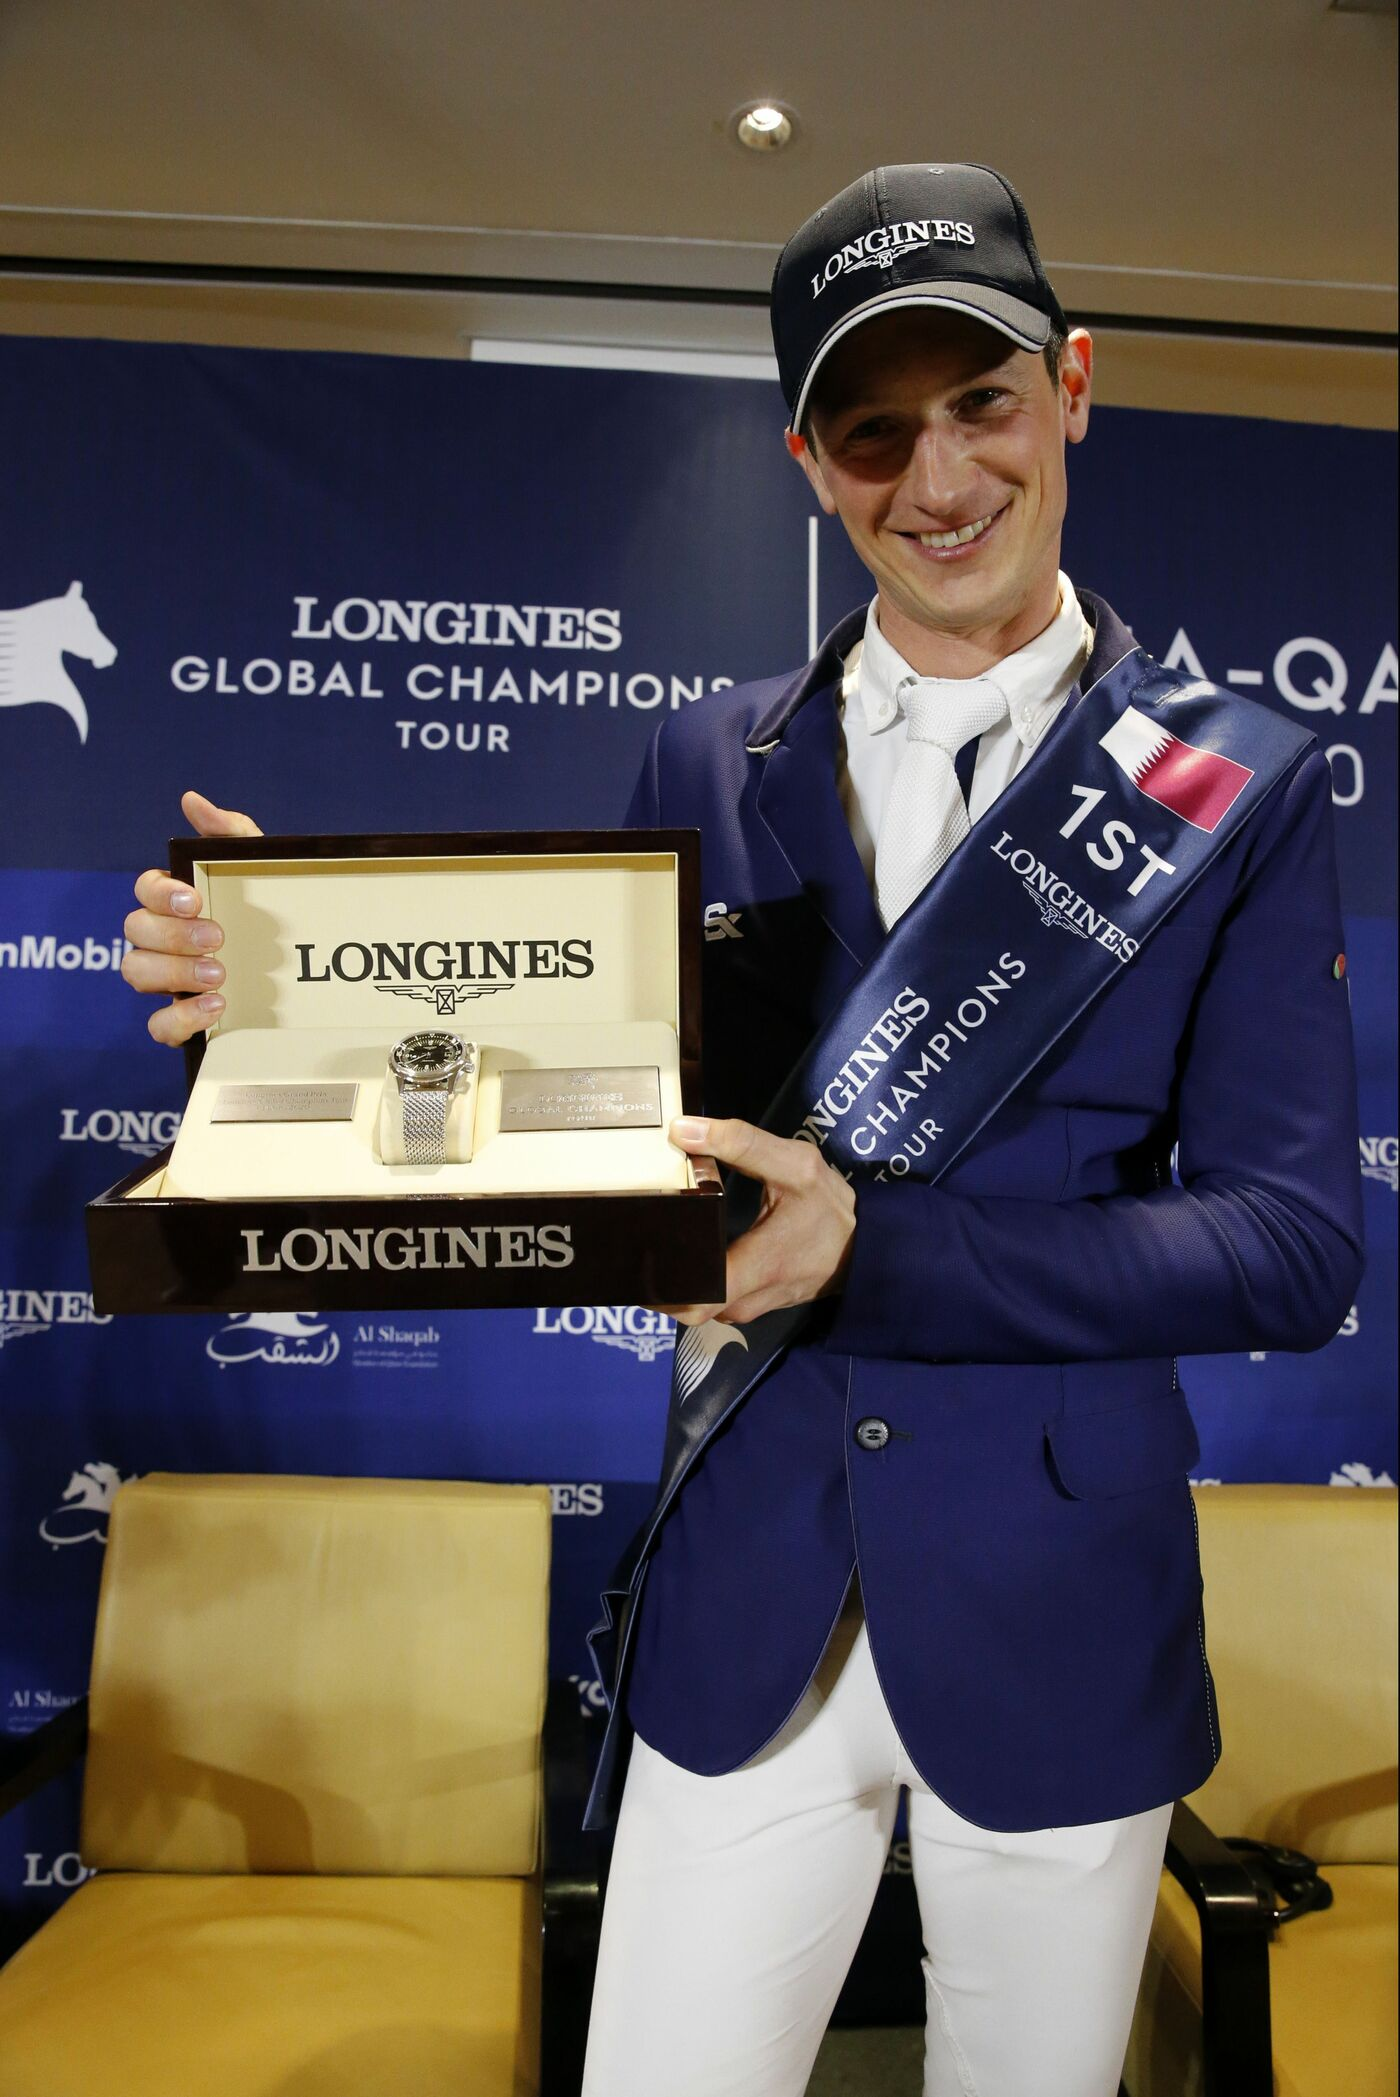 Longines Show Jumping Event: Doha hosted the world's best riders and horses for the launch of the new Longines Global Champions Tour season 4